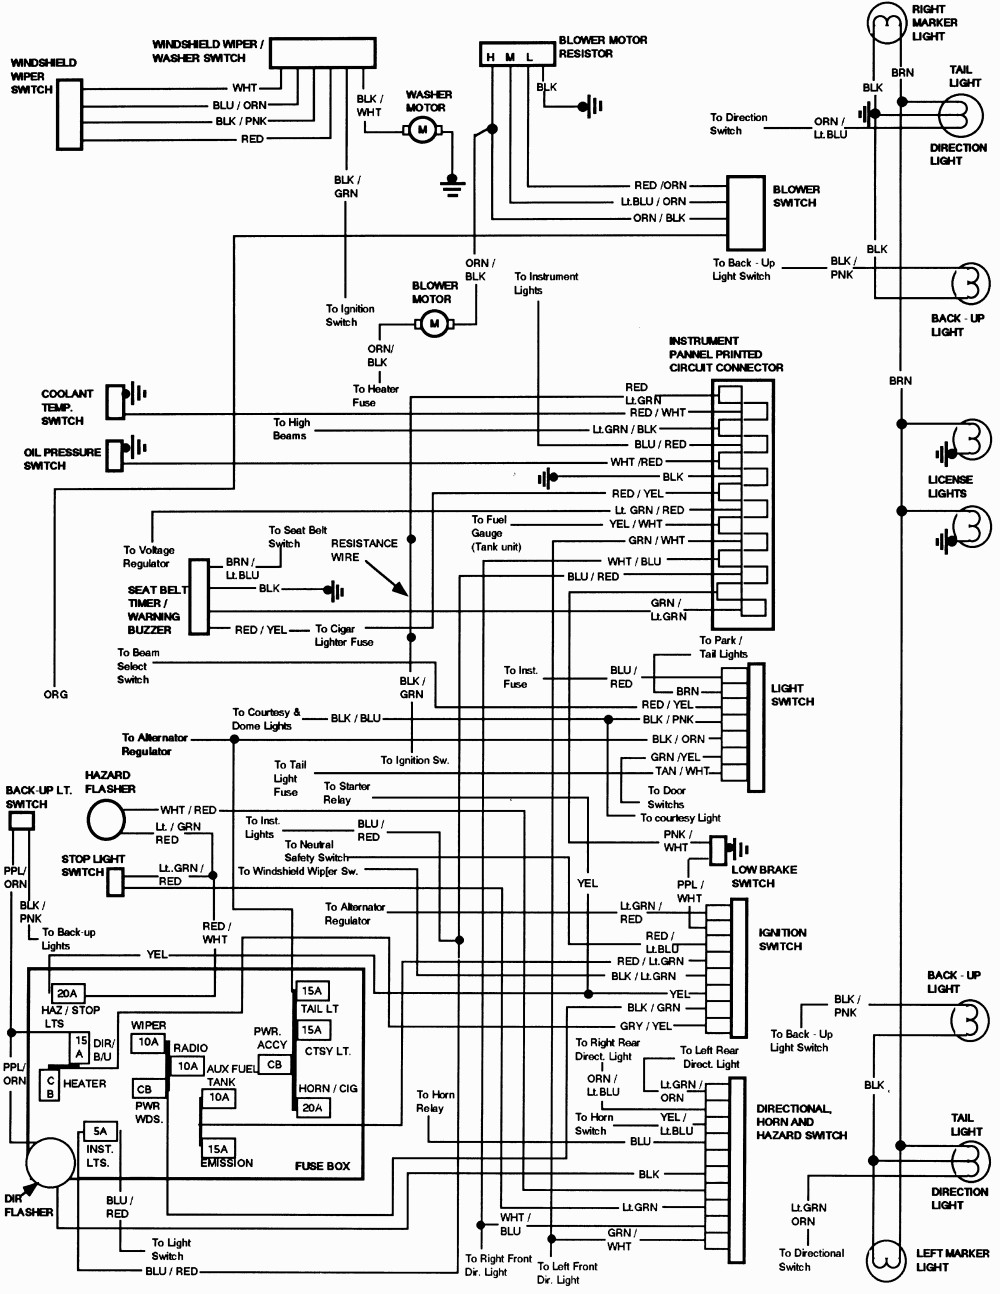 hight resolution of 95 ford f350 wiring diagram wiring diagram inside tail light wiring diagram for 95 ford f 250